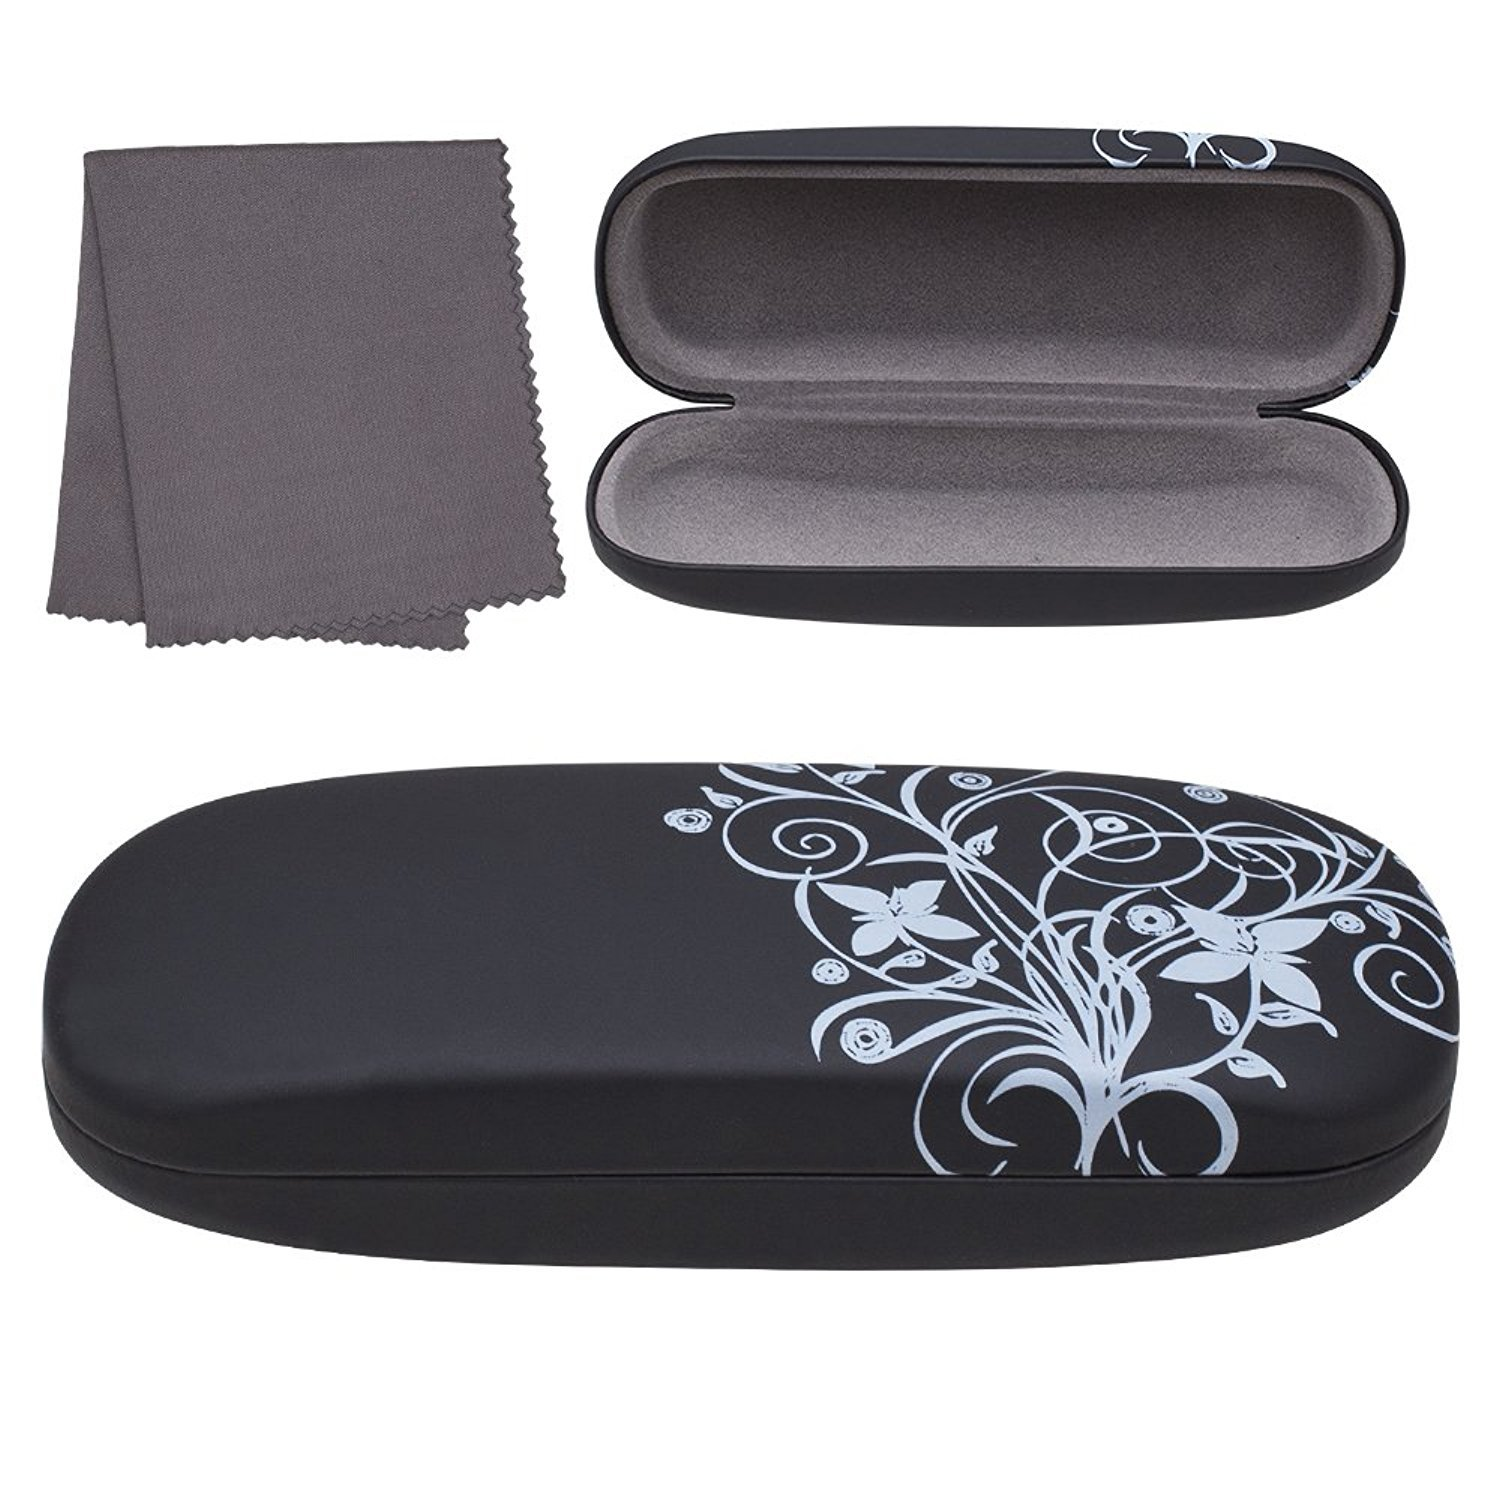 Hard Shell Eyeglass Case For Sunglasses Reading Eyeglasses And Most Eyewear Includes Cleaning Cloth Glasses Case